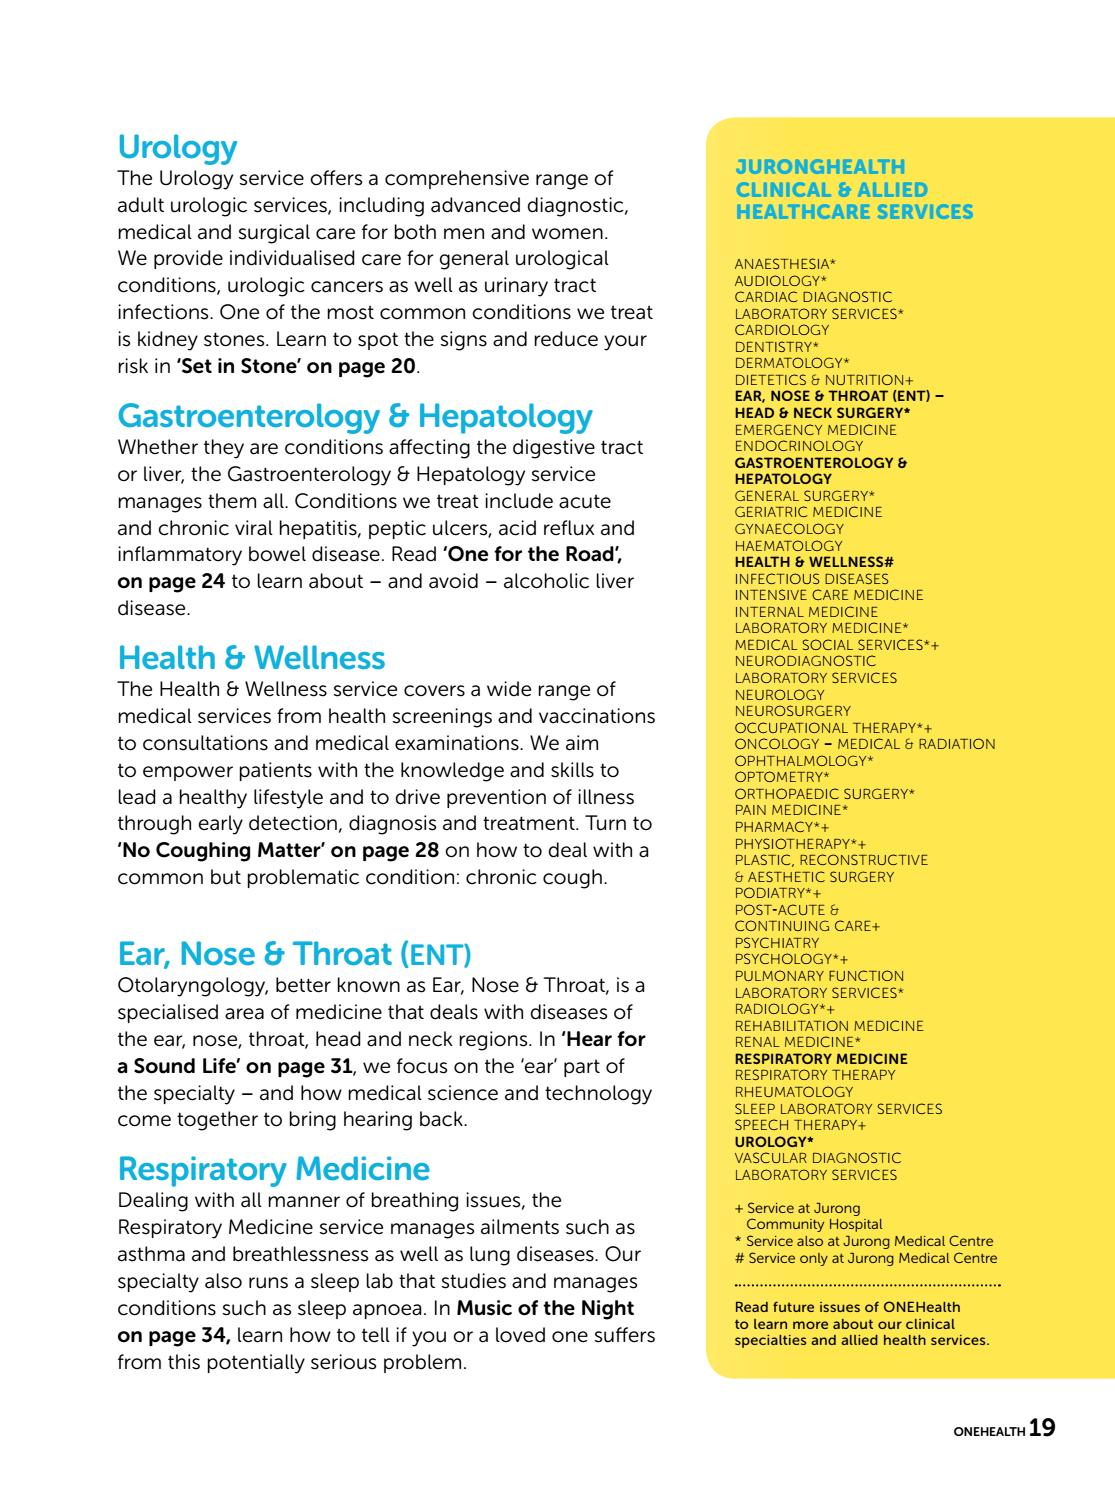 ONEHealth Issue 8 by JurongHealth Campus - issuu